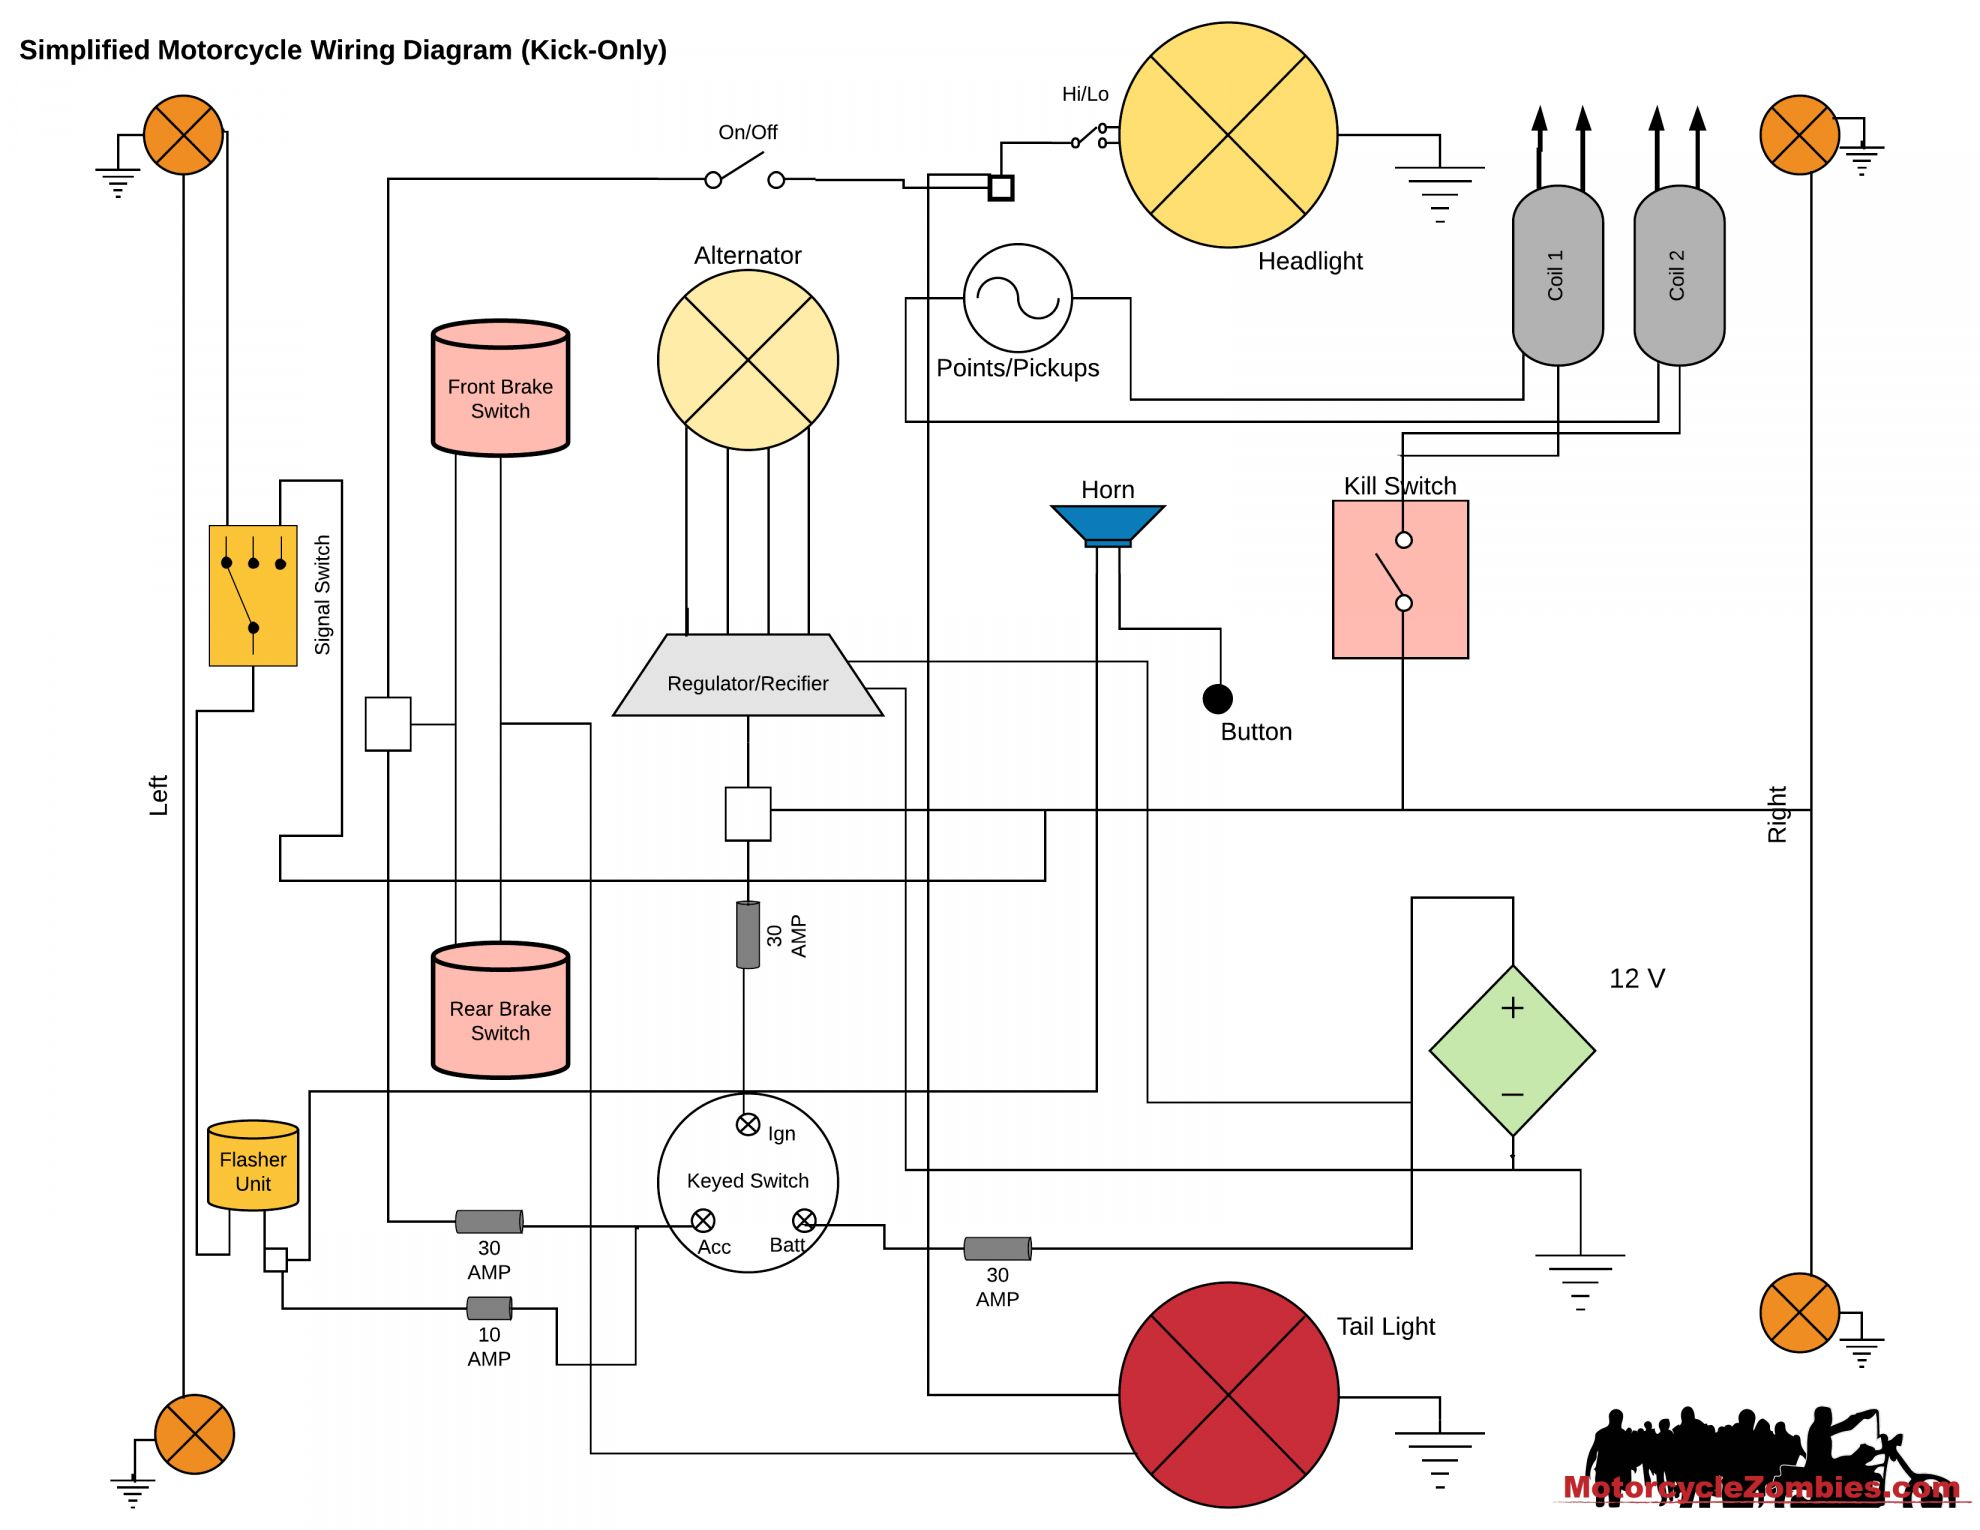 12 Motorcycle Wiring Diagram Without Battery Motorcycle Diagram Wiringg Net In 2020 Motorcycle Wiring Motorcycle Design Electrical Wiring Diagram